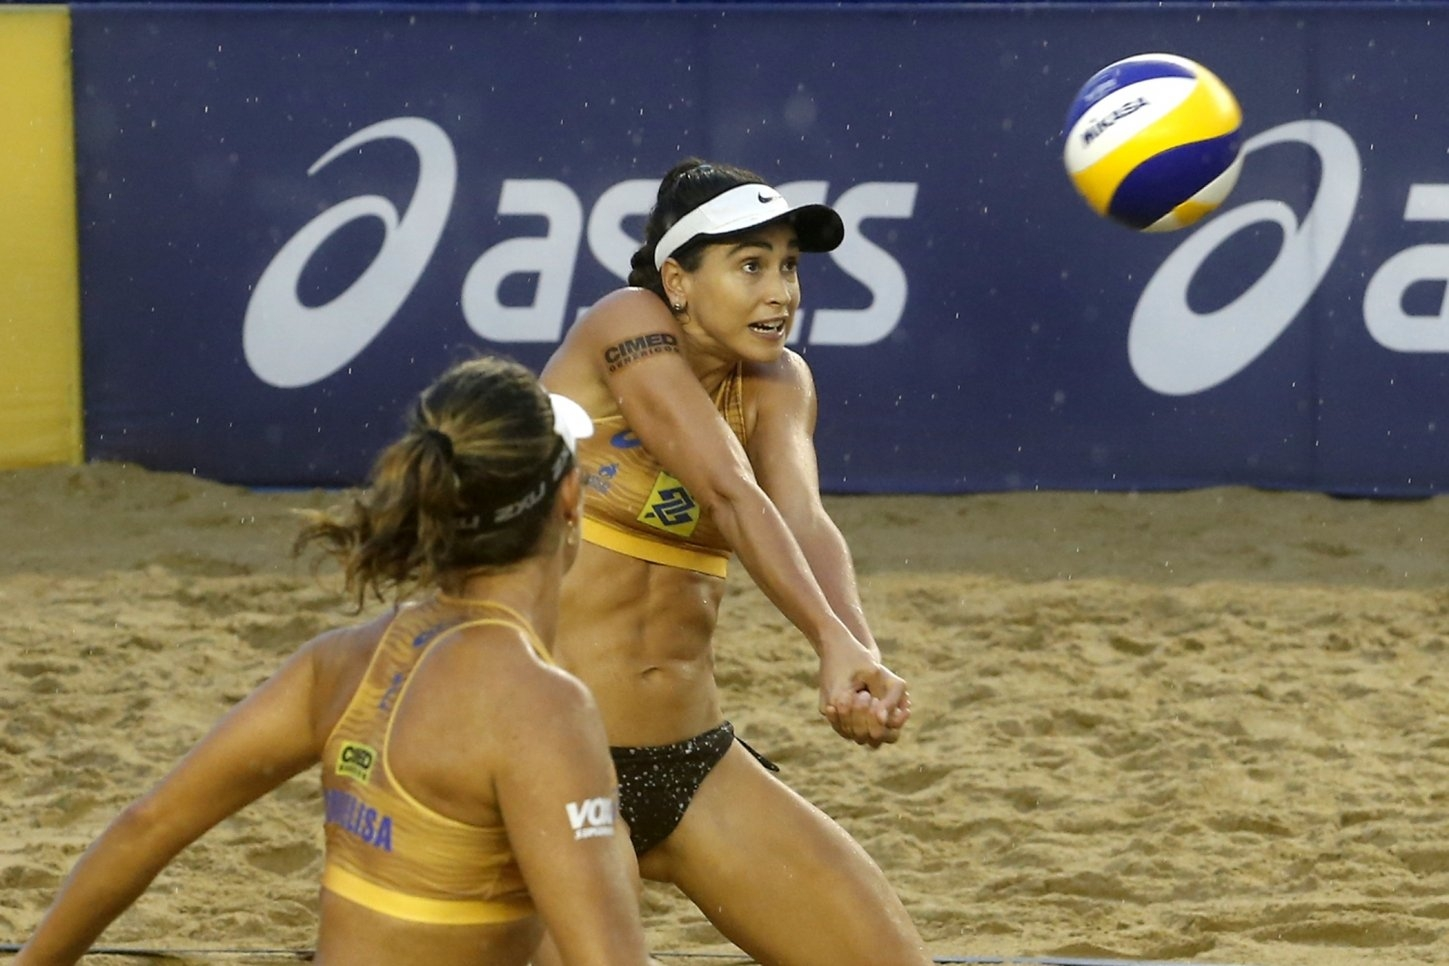 Carol Solberg and Maria Elisa Antonelli lead the Brazilian Tour after four events (Photocredit: CBV)